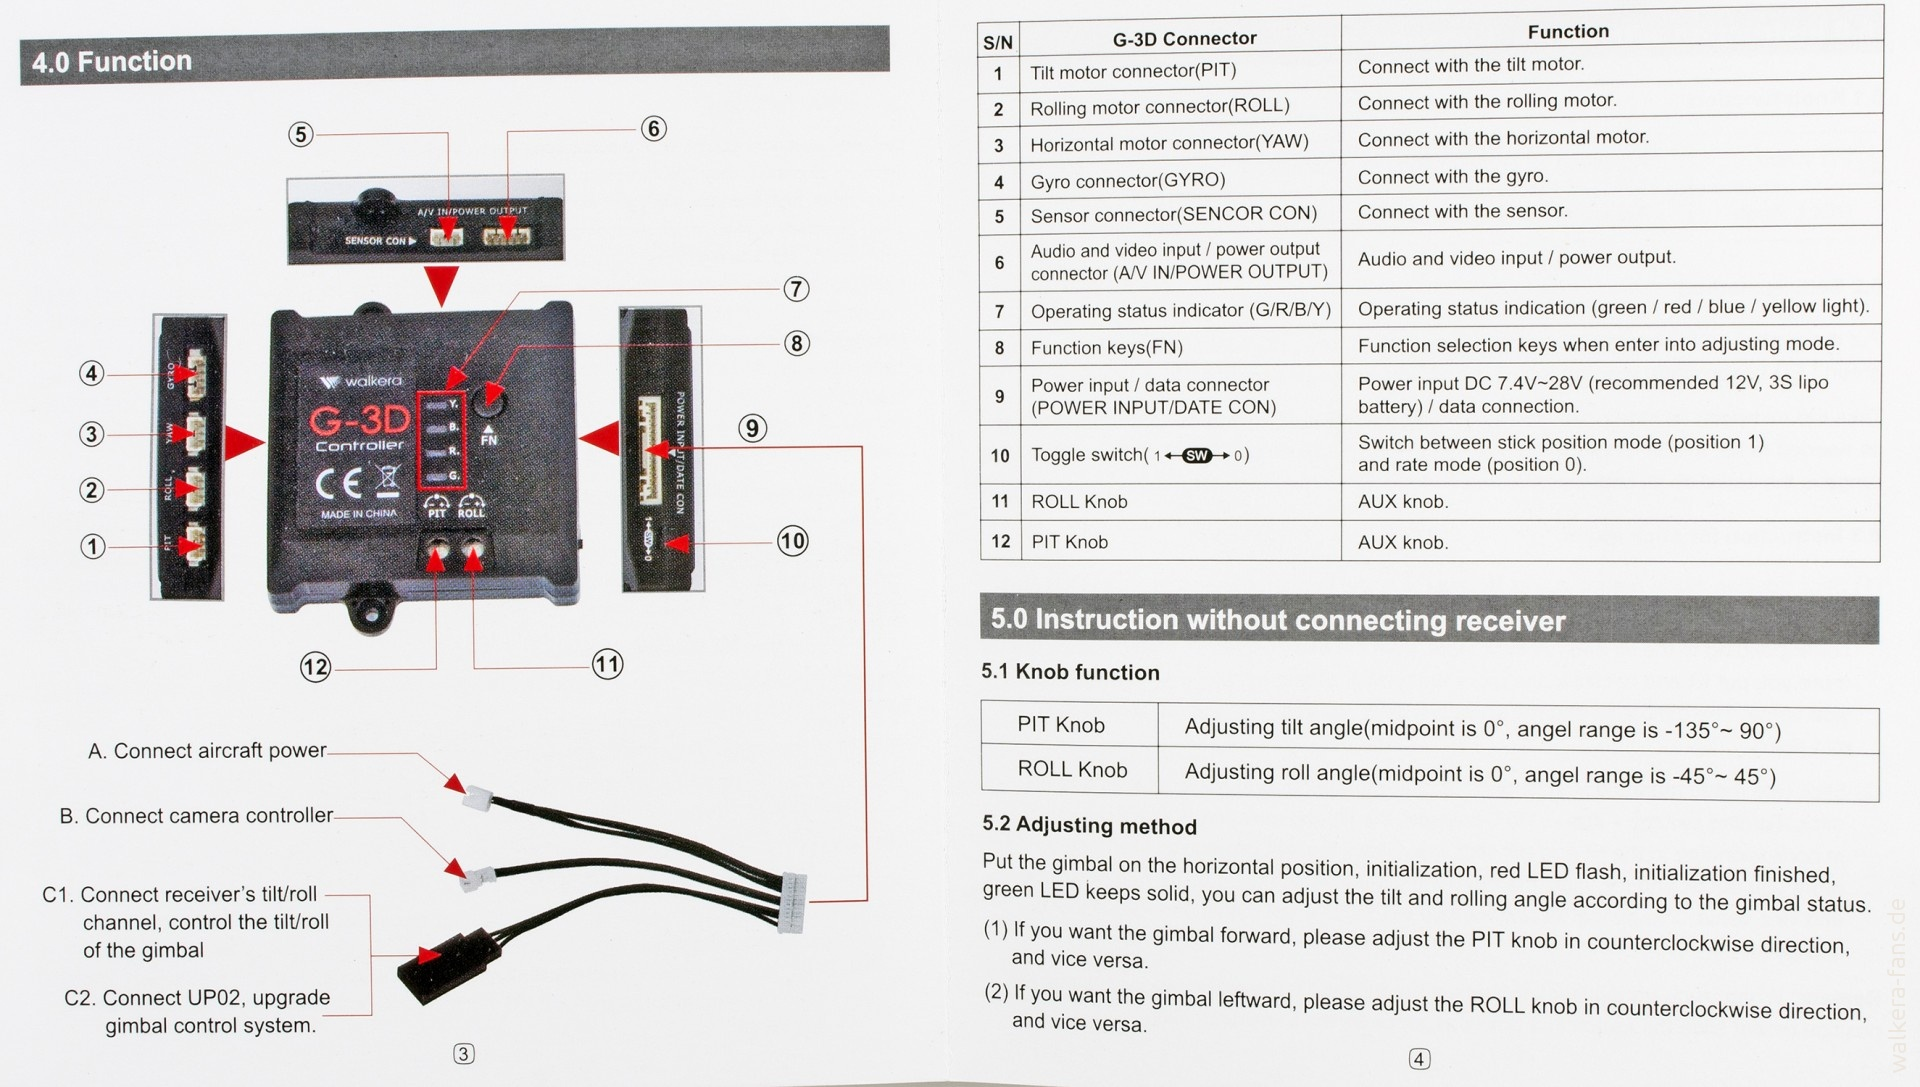 mercedes 1997 bose radio wiring diagram  mercedes  auto